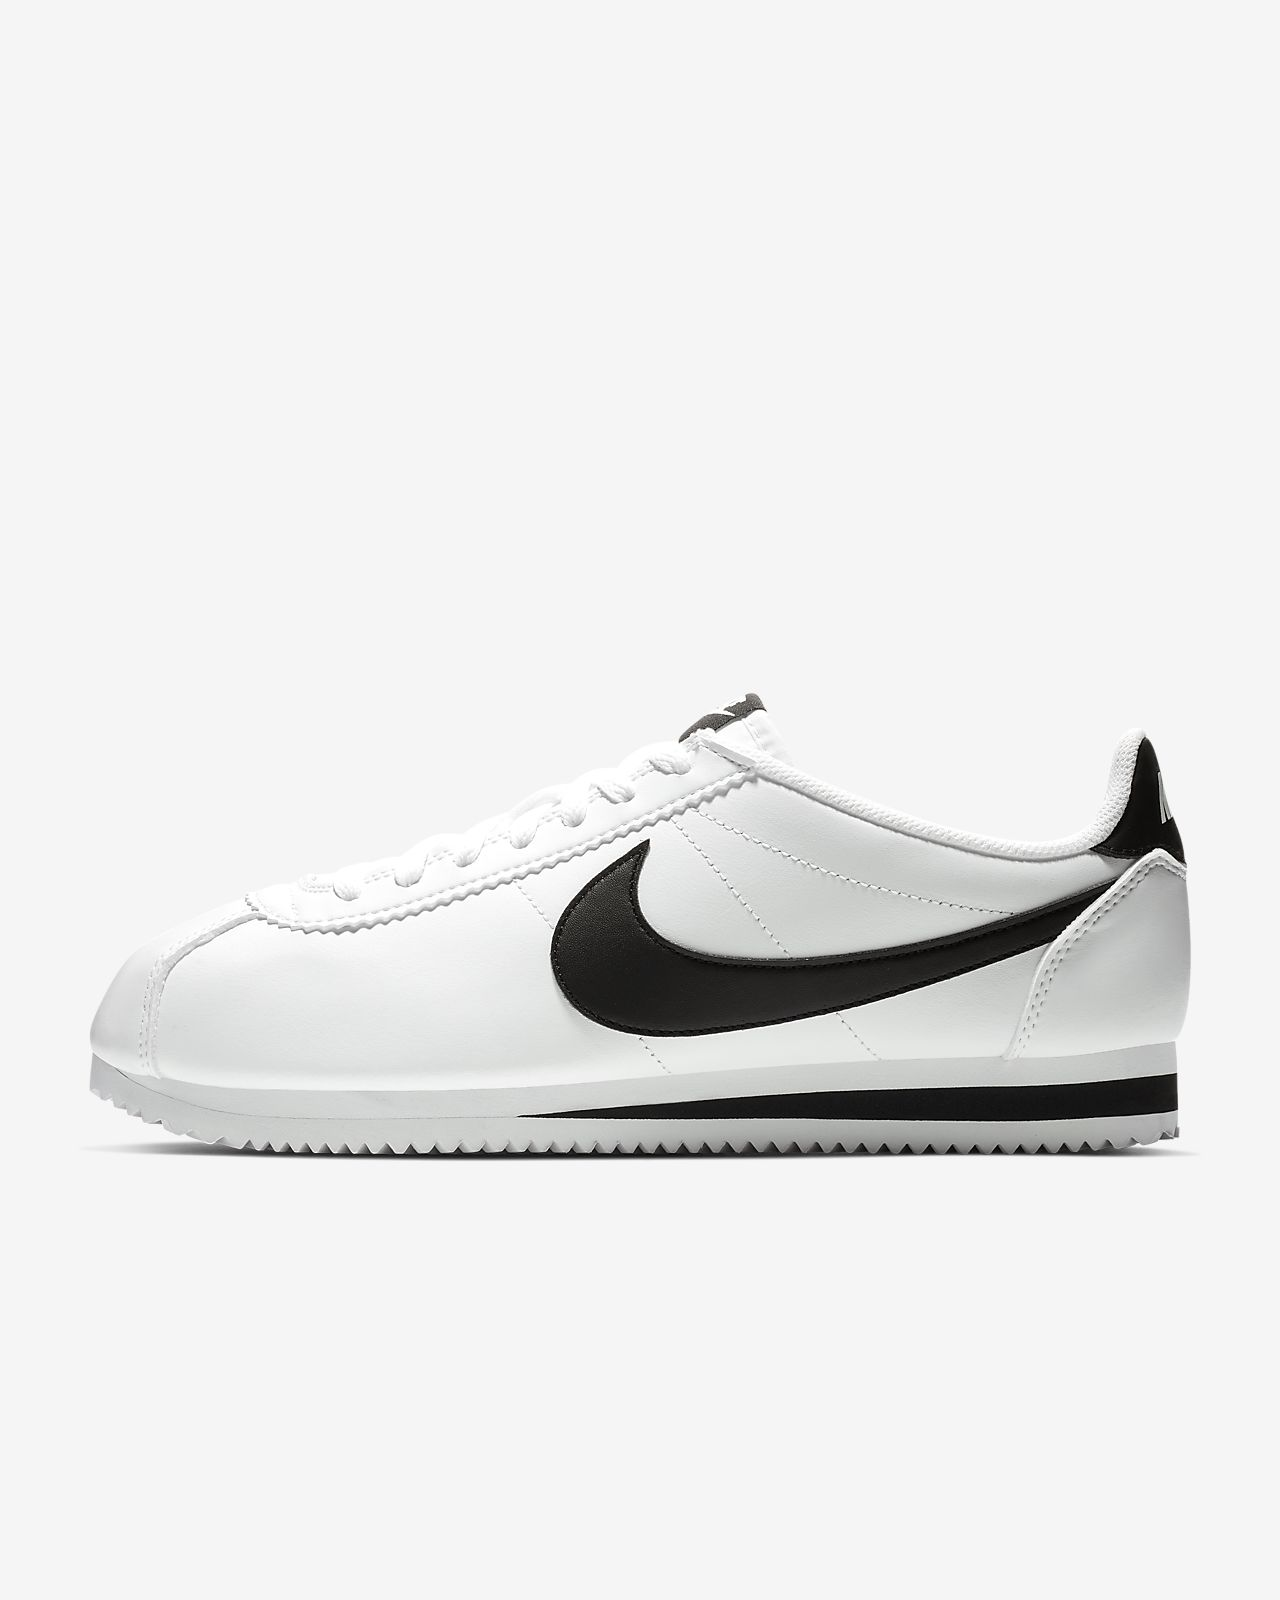 2018 Chaussures Sneakers Nike Outfit Tendance Cortez 2017